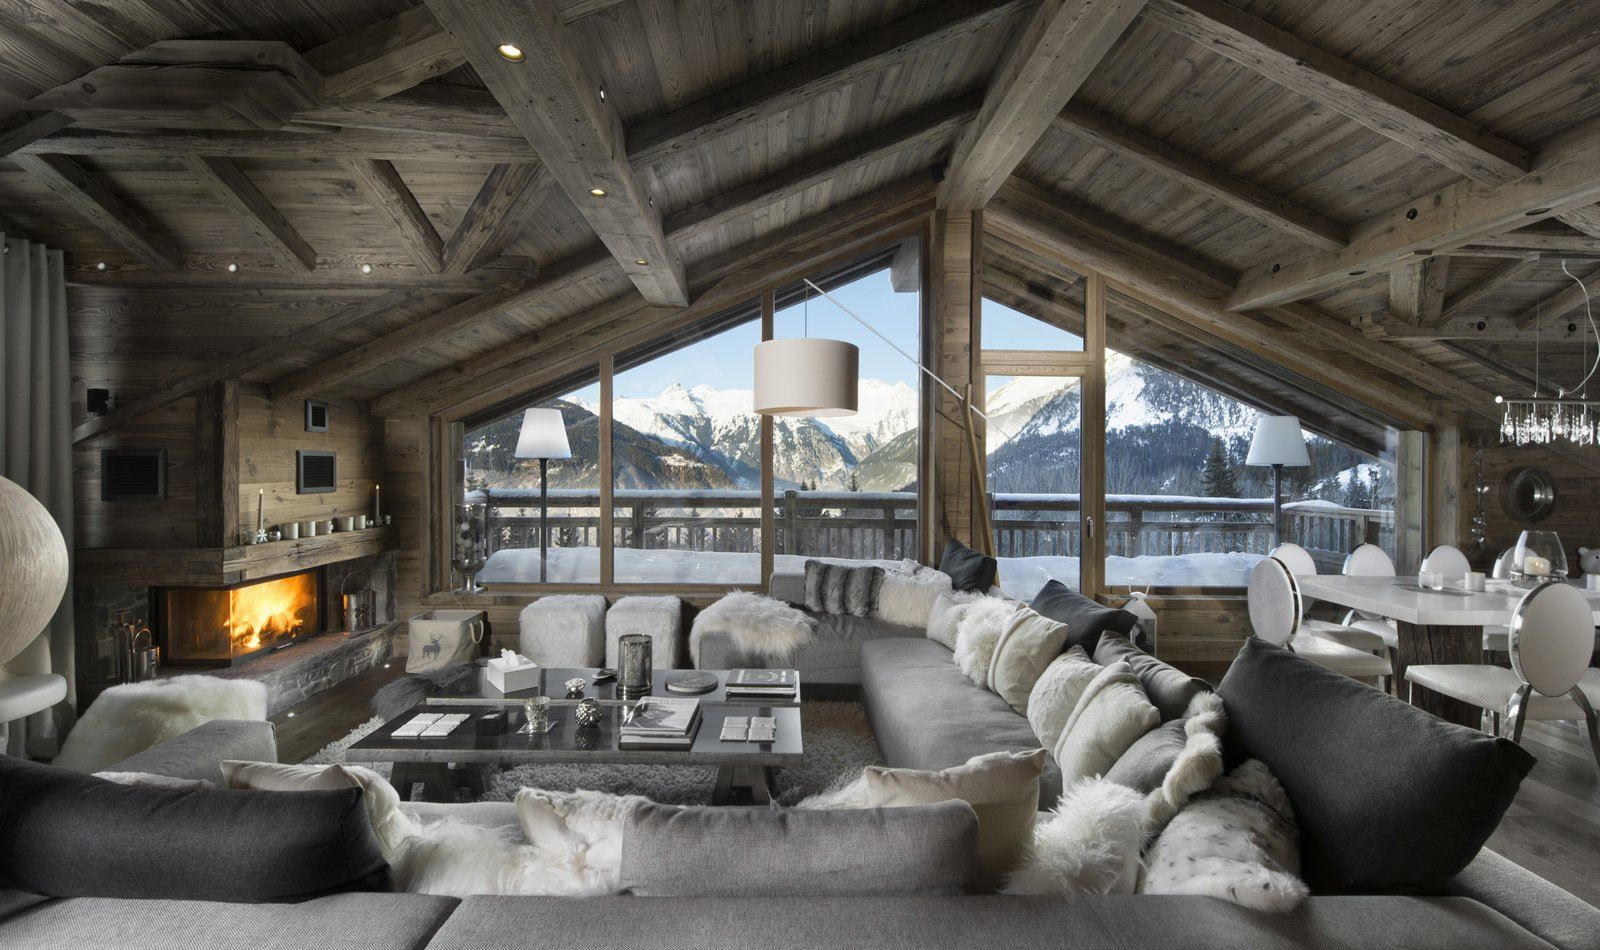 CHALET L'OR BLANC: Chalet for 10 people